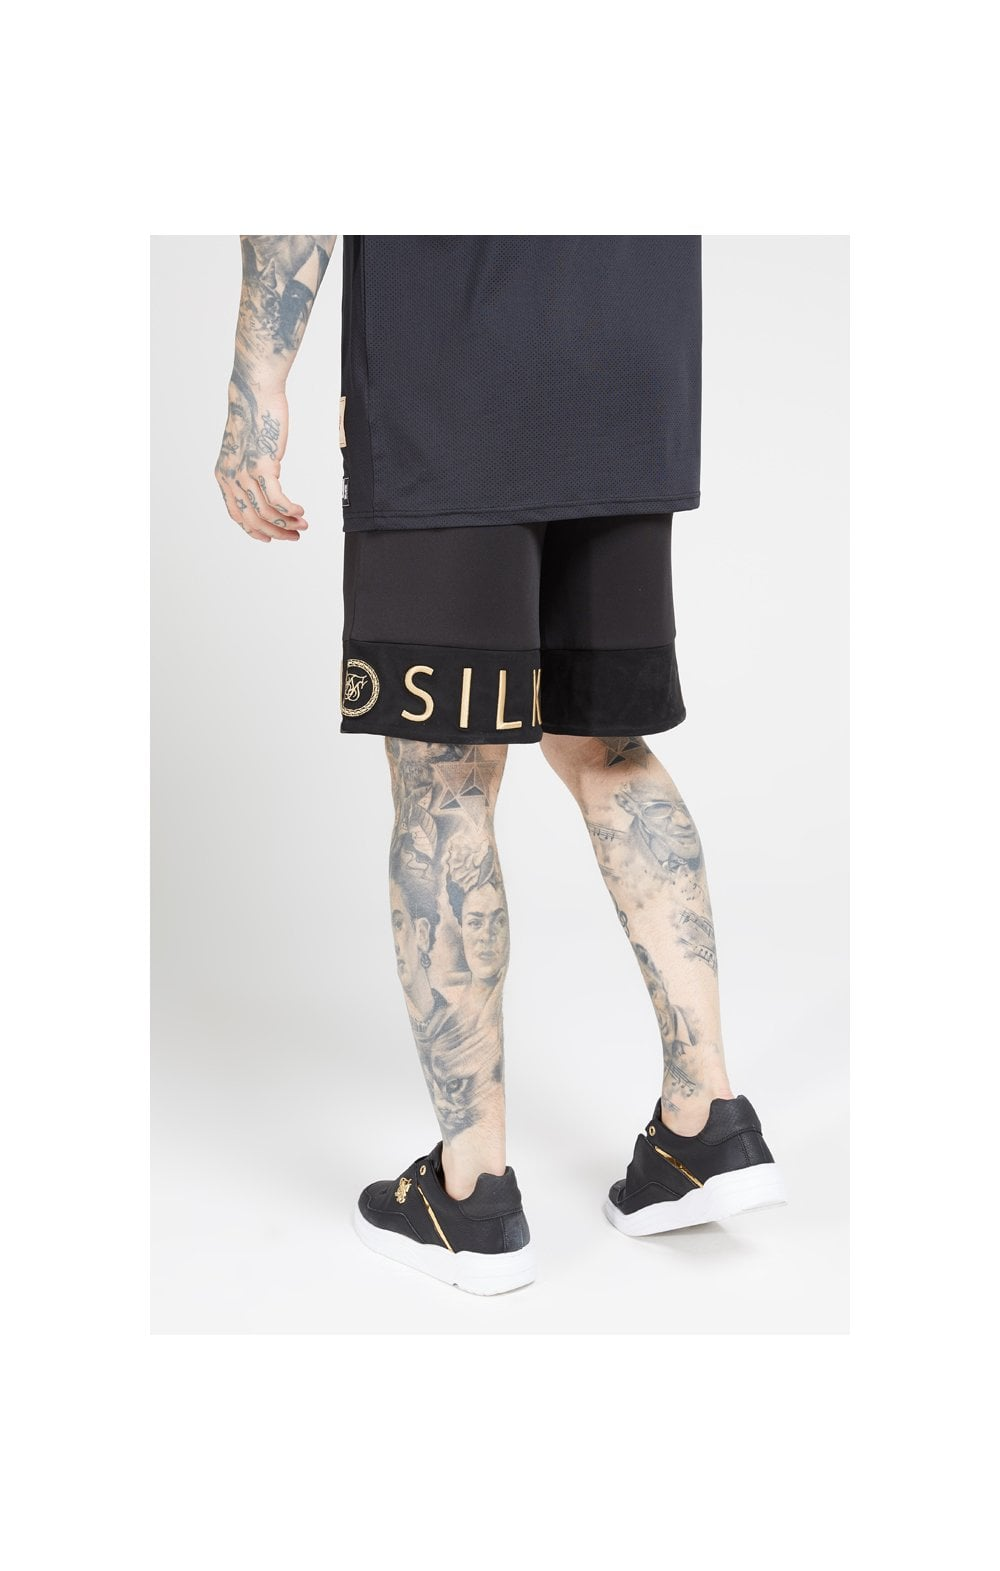 SikSilk Relaxed Shorts - Black & Gold (3)